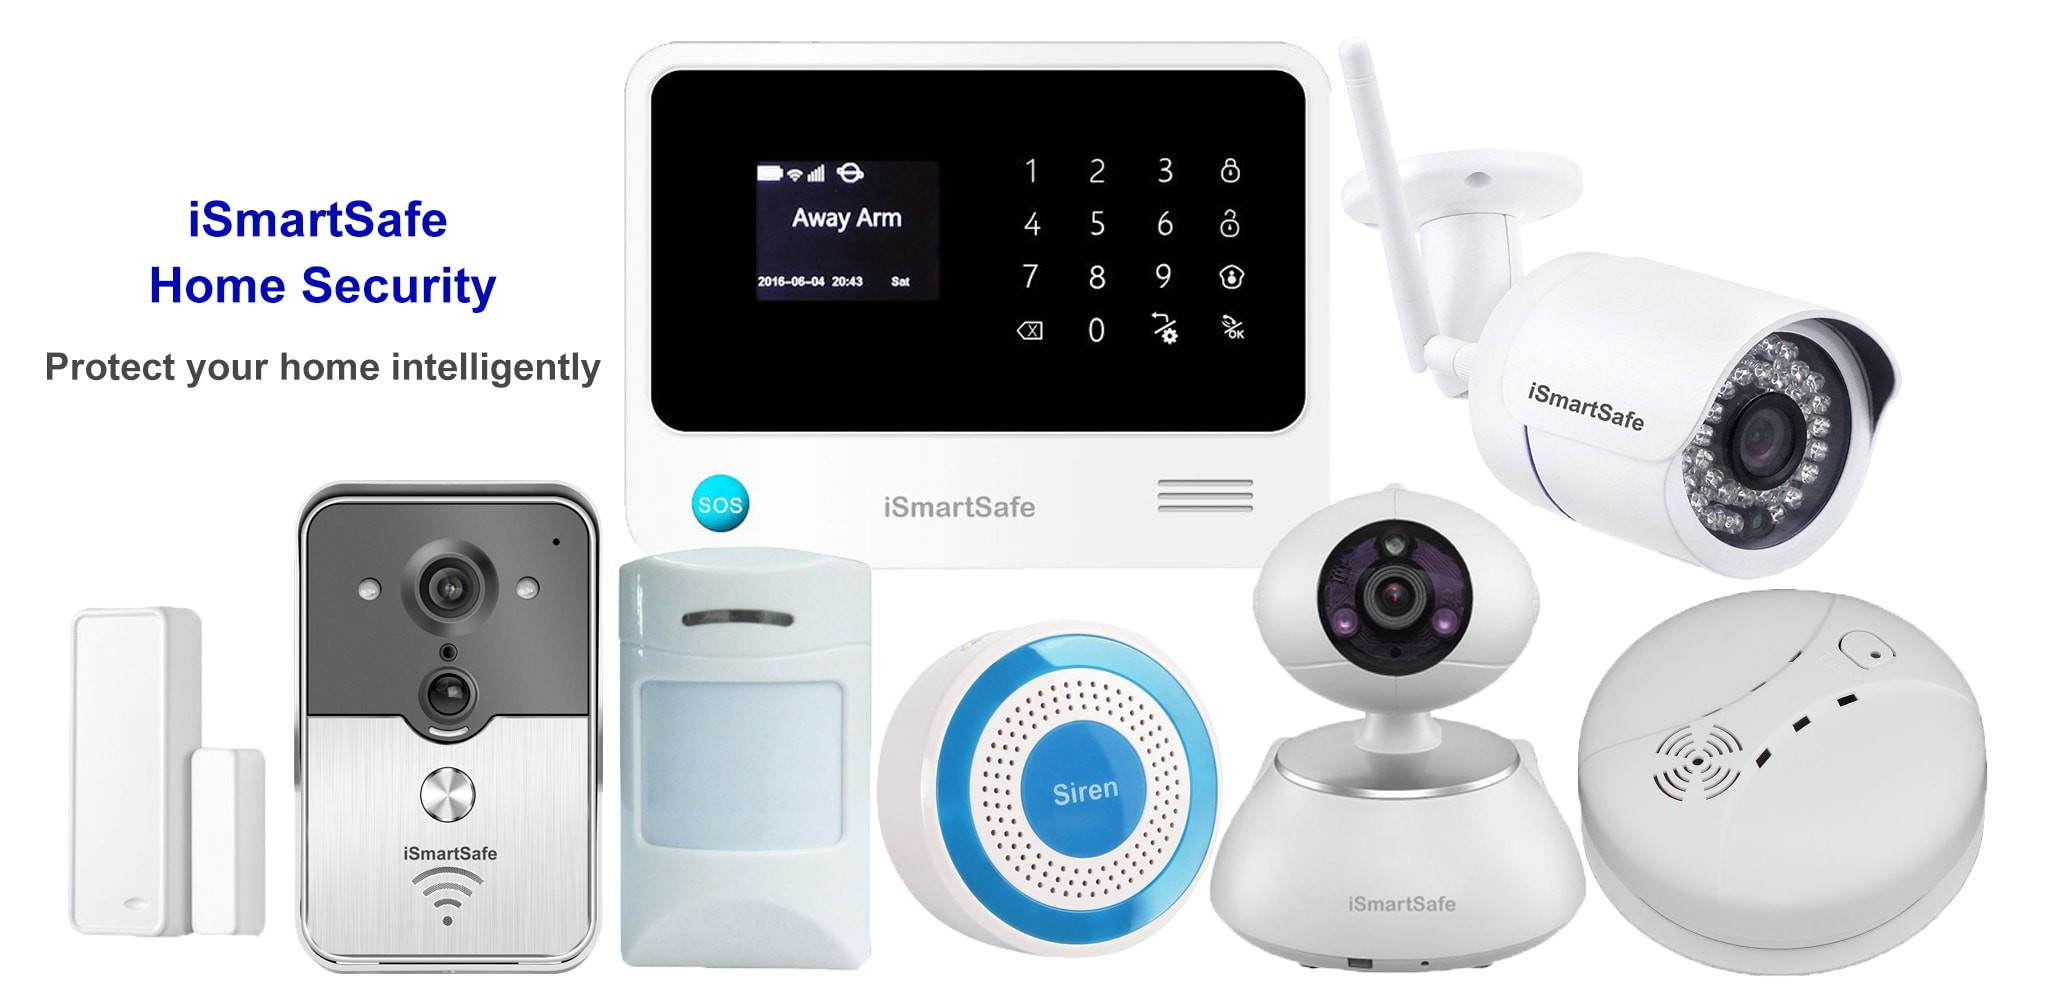 DIY Home Security Systems With Cameras  Best DIY Home Security Systems Video Doorbell Cameras